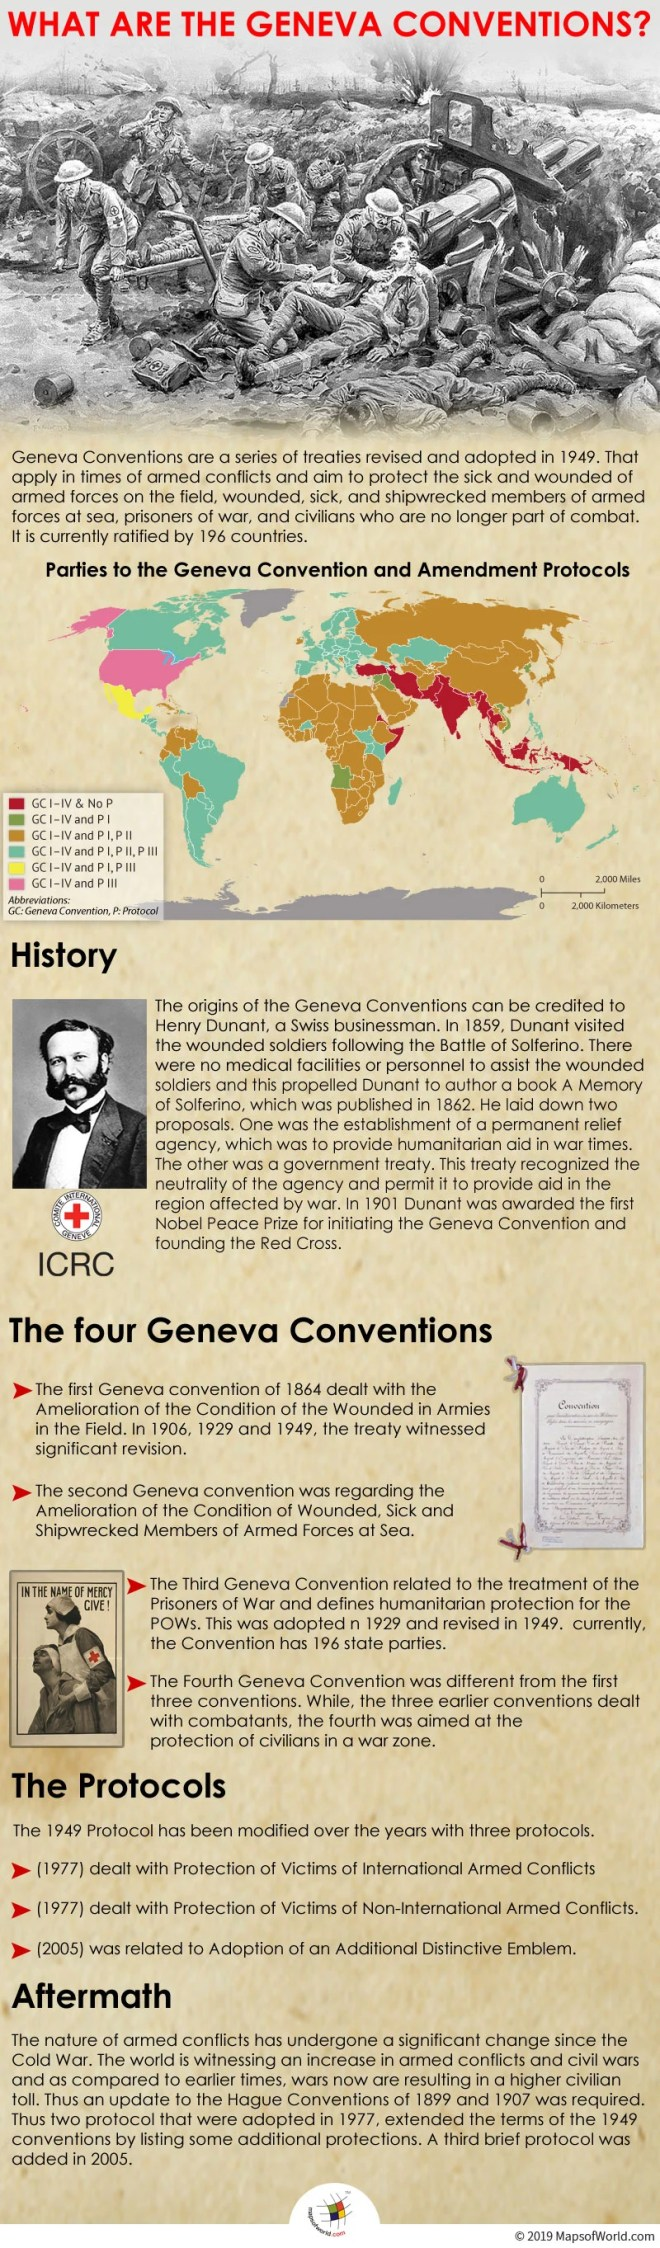 Infographic Giving Details on Geneva Conventions